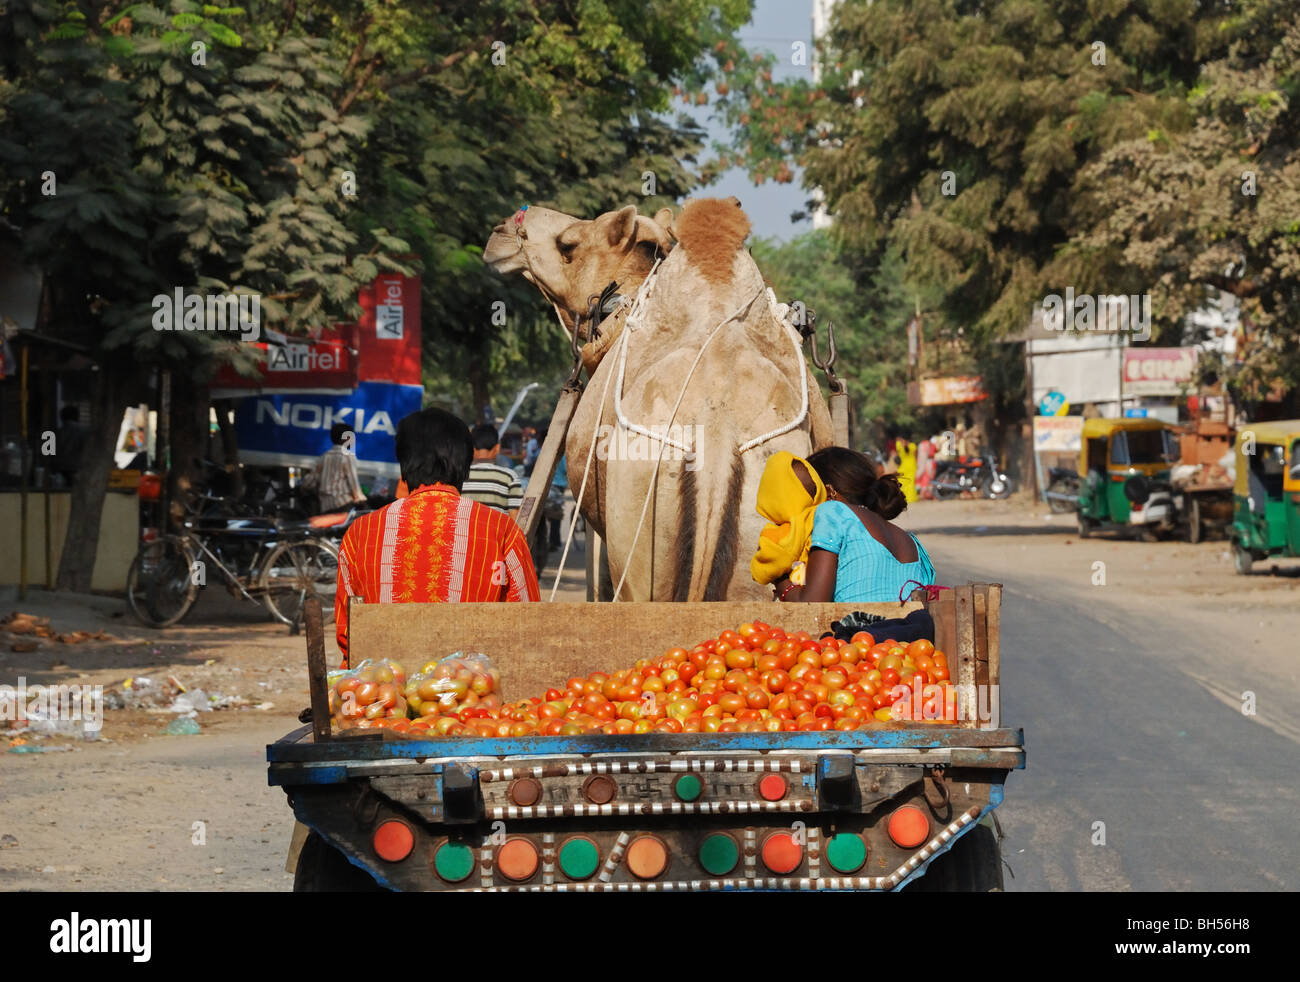 Camel drawn cart carrying tomatoes in Ahmedabad, India. - Stock Image